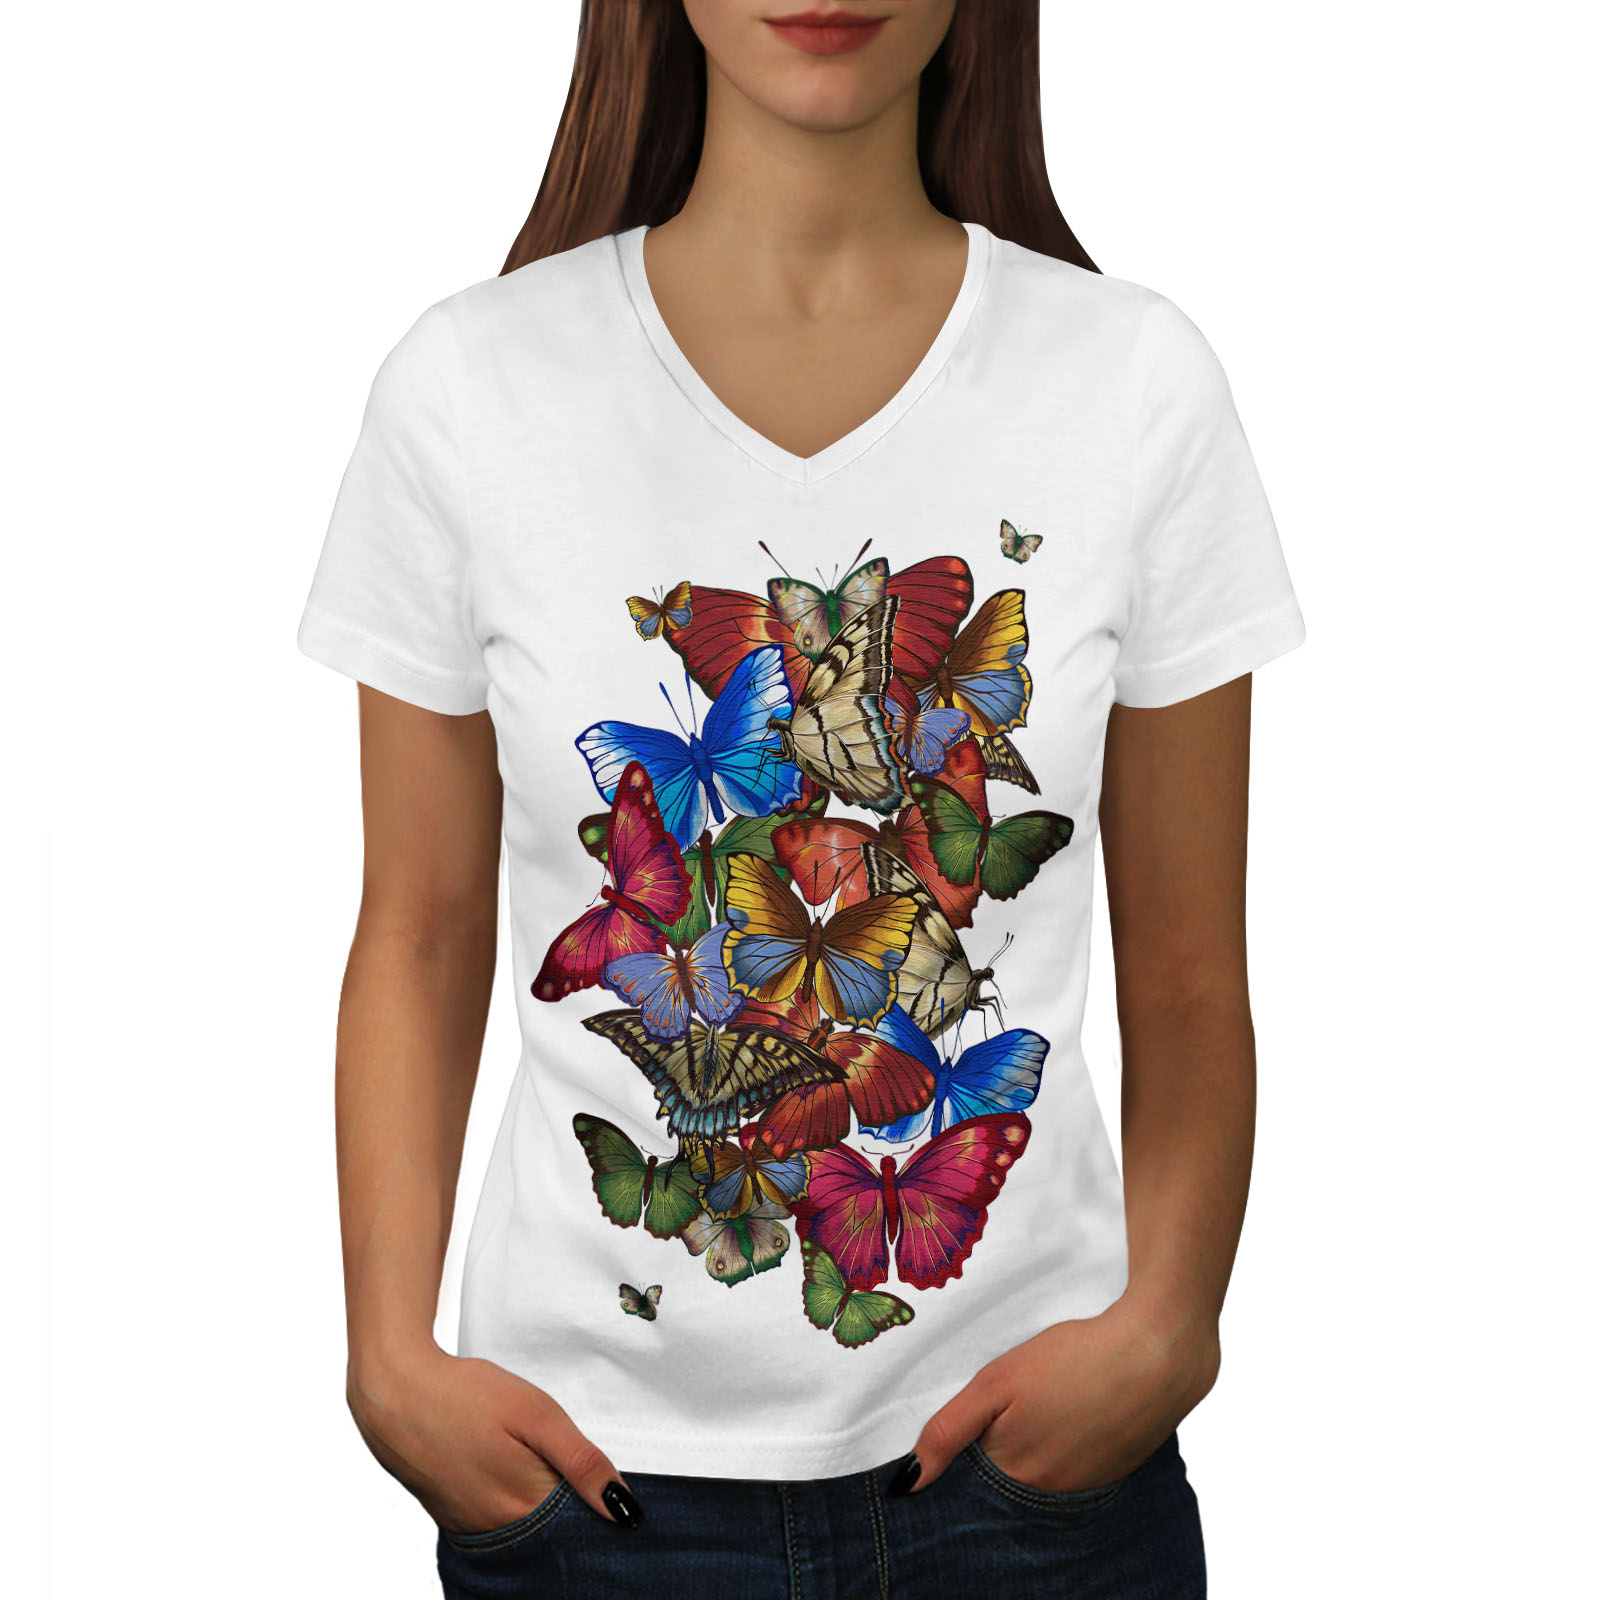 Wellcoda-Colorful-Butterfly-Womens-V-Neck-T-shirt-Freedom-Graphic-Design-Tee thumbnail 7